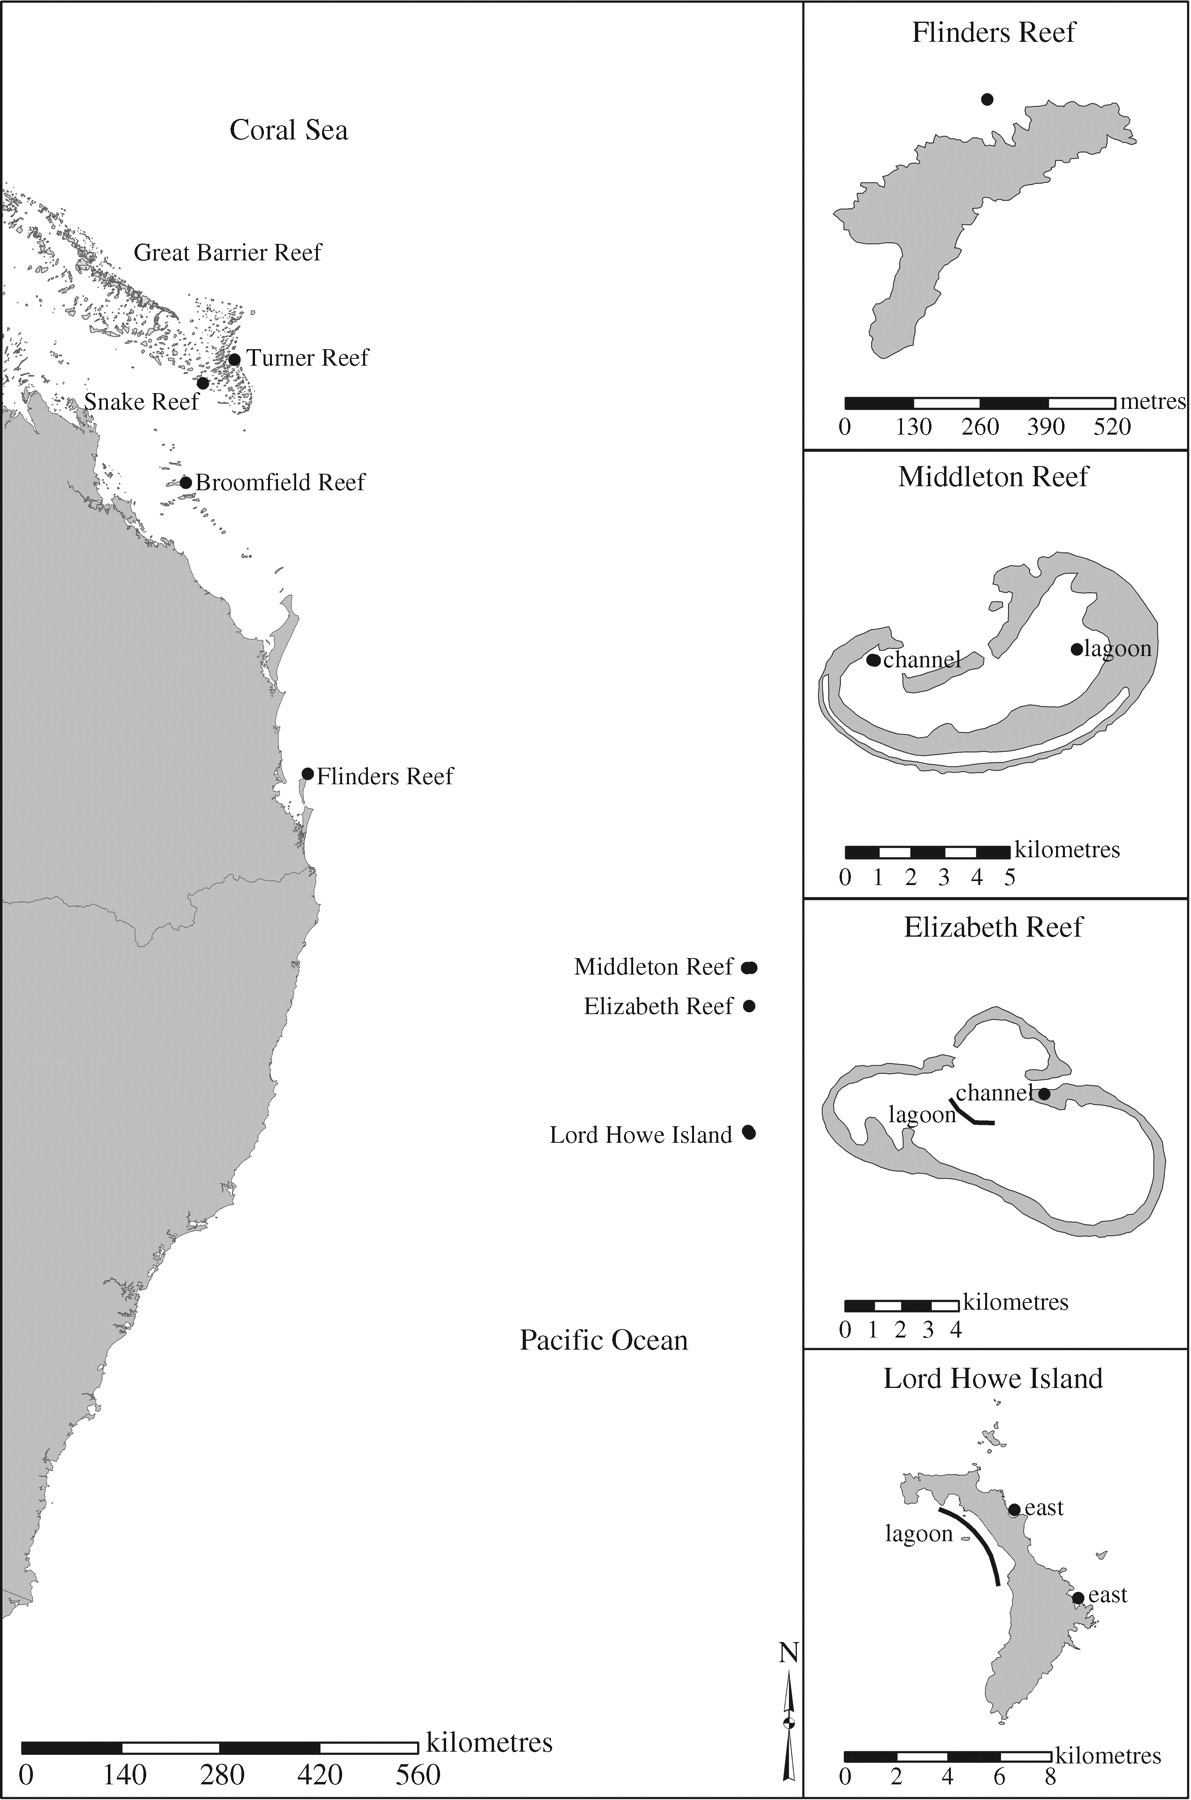 Genetic diversity and connectivity in a brooding reef coral